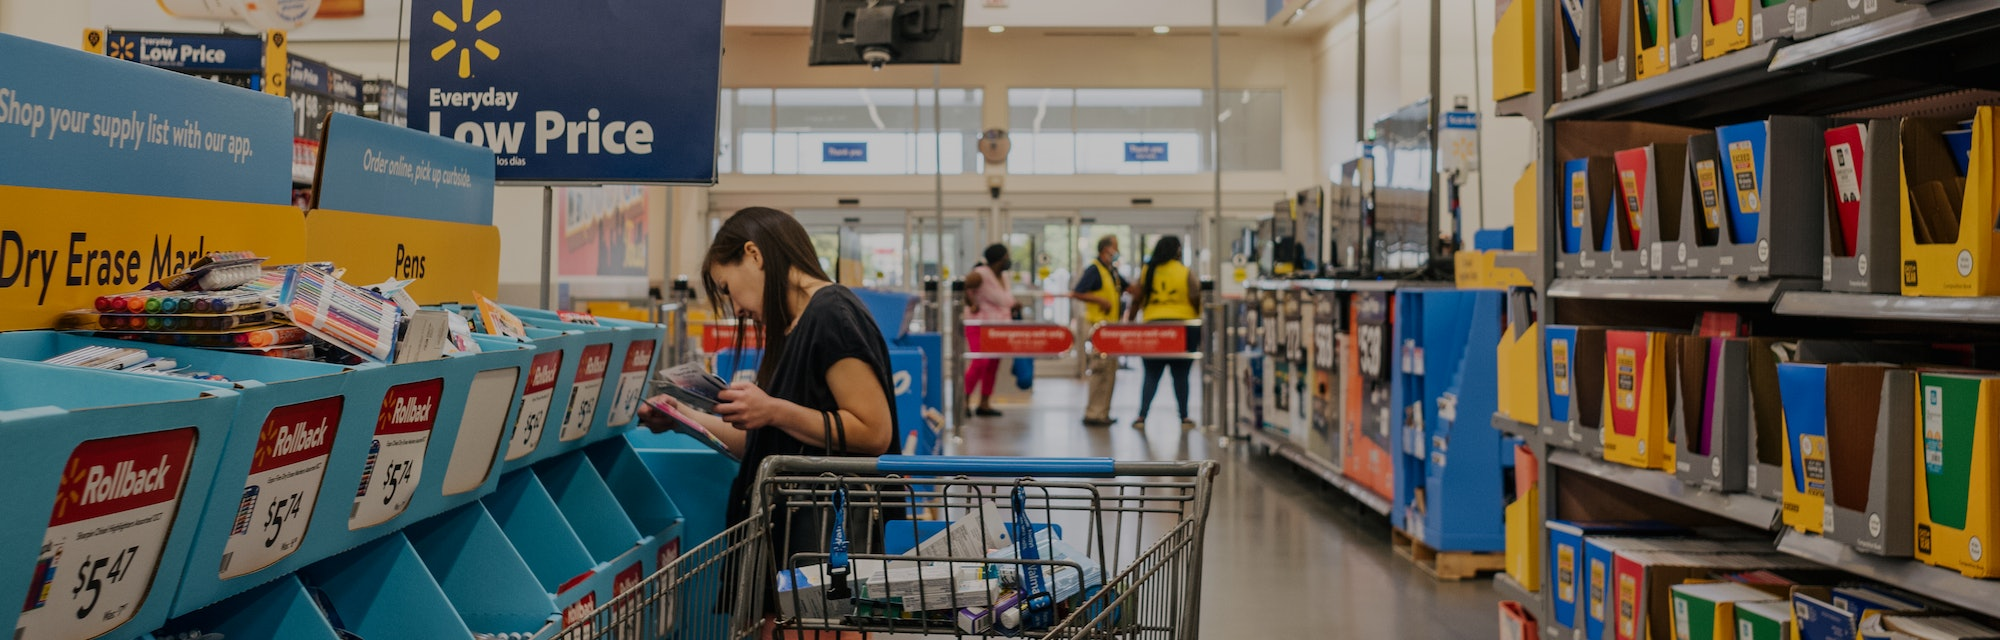 HOUSTON, TEXAS - AUGUST 04: A customer shops at a Walmart store on August 04, 2021 in Houston, Texas...